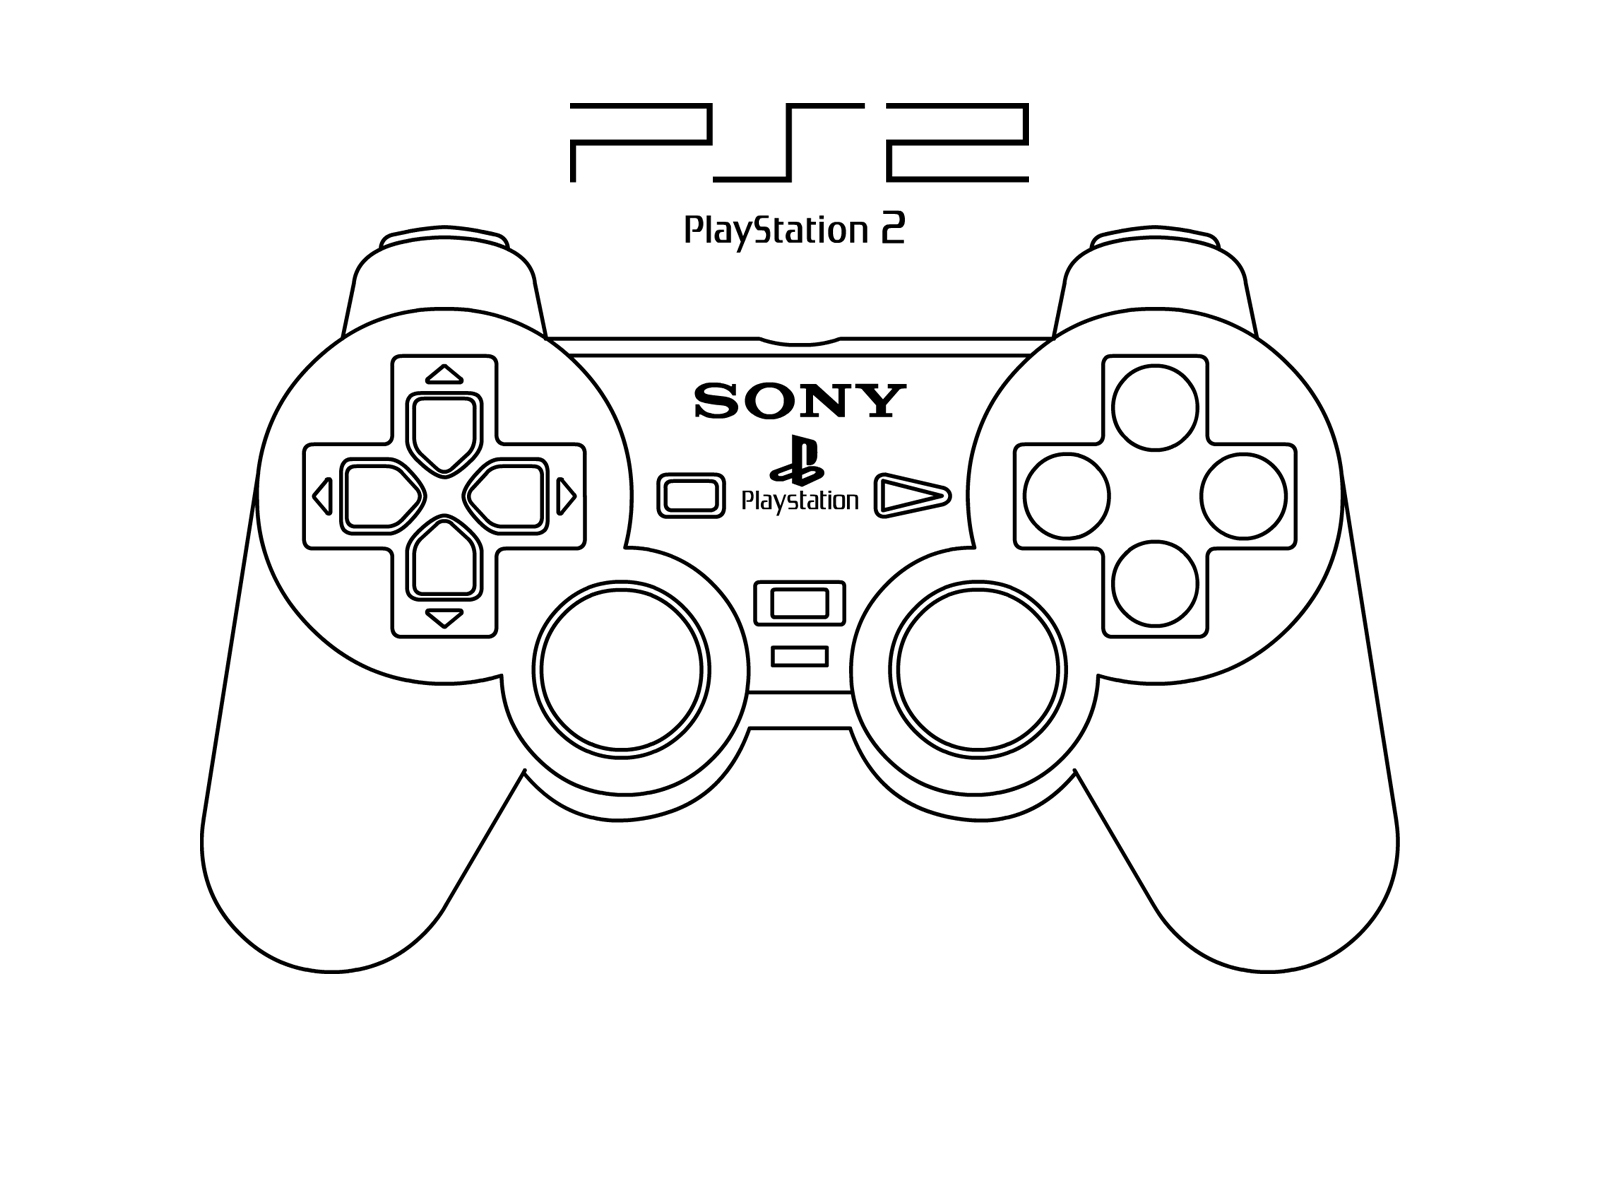 1600x1200 Playstation 2 Pad By Oloff3